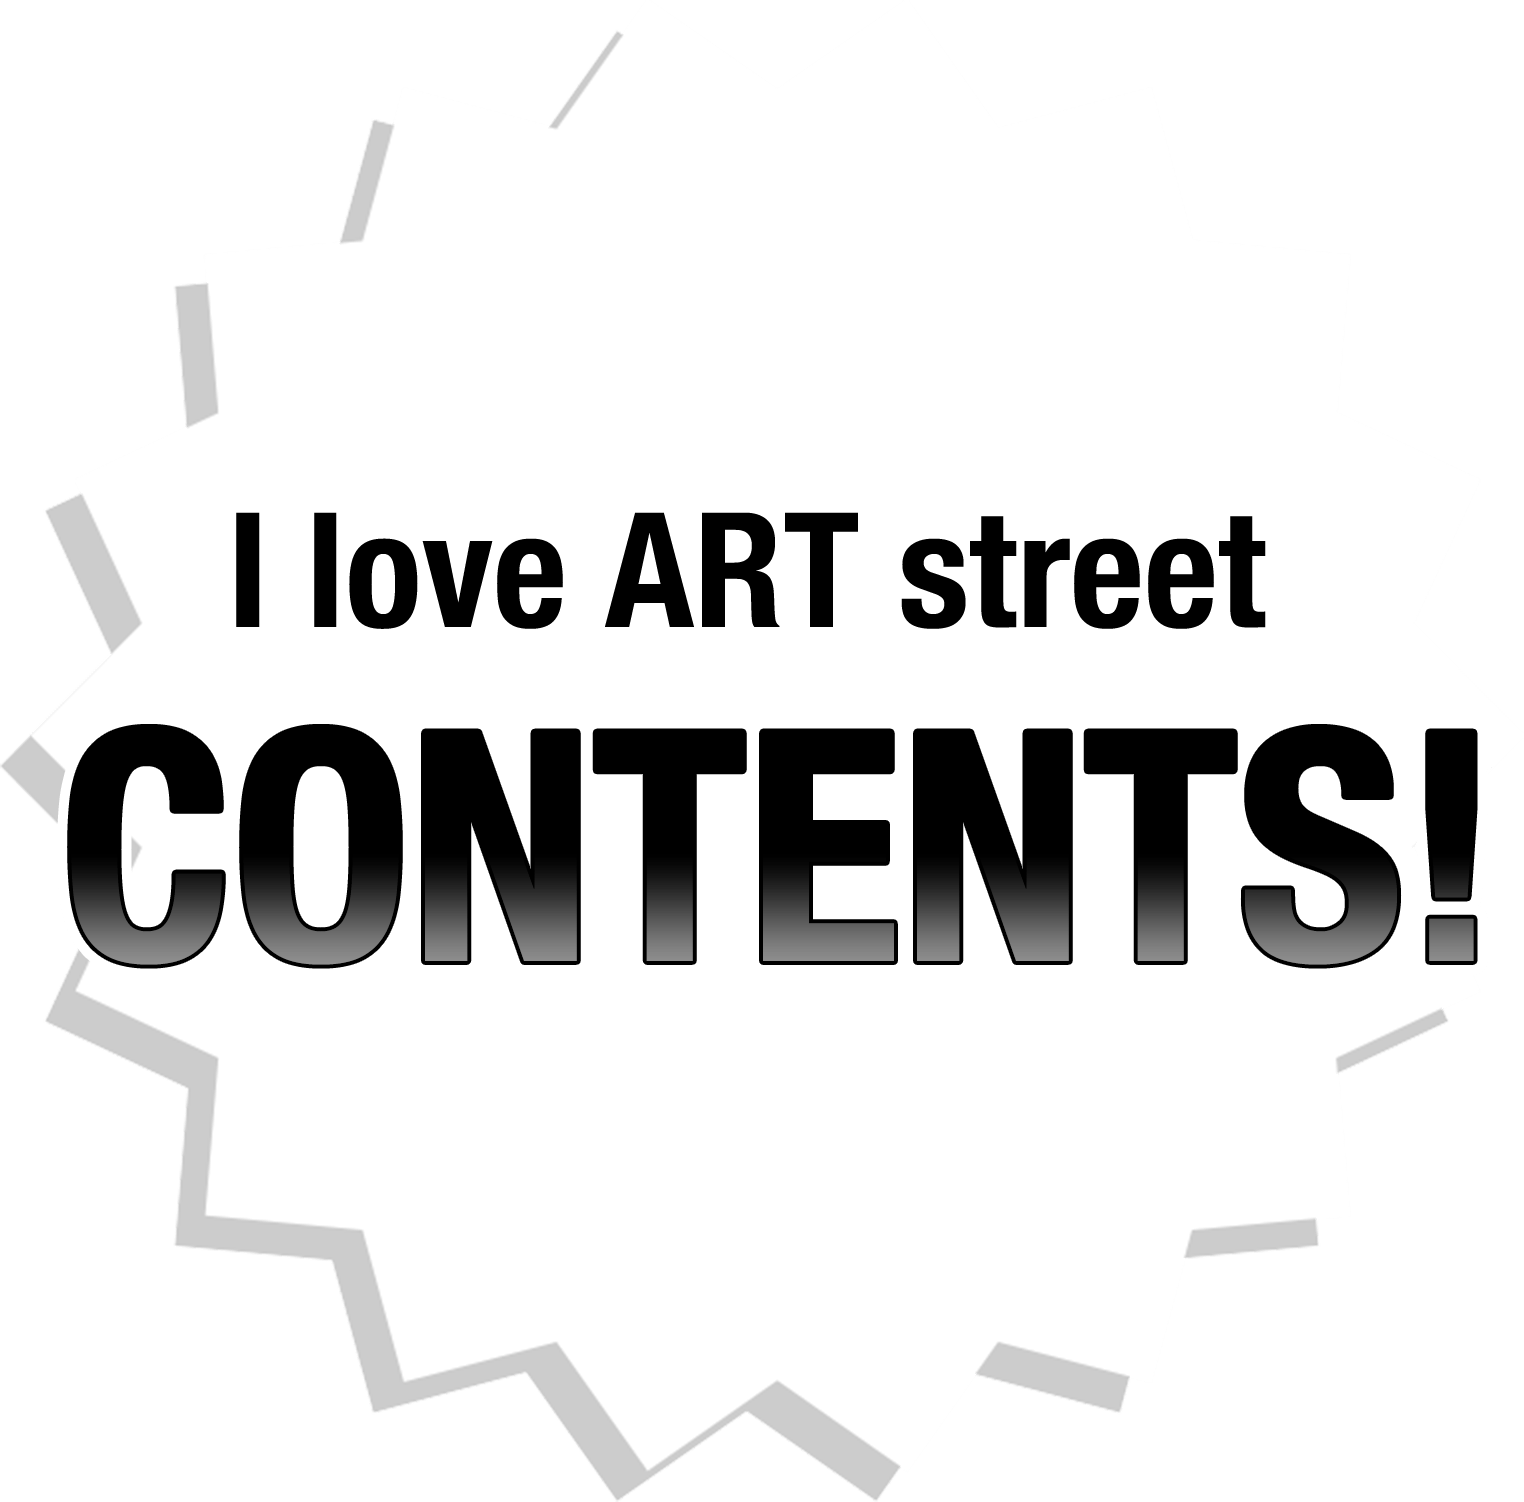 I love ART street contents!